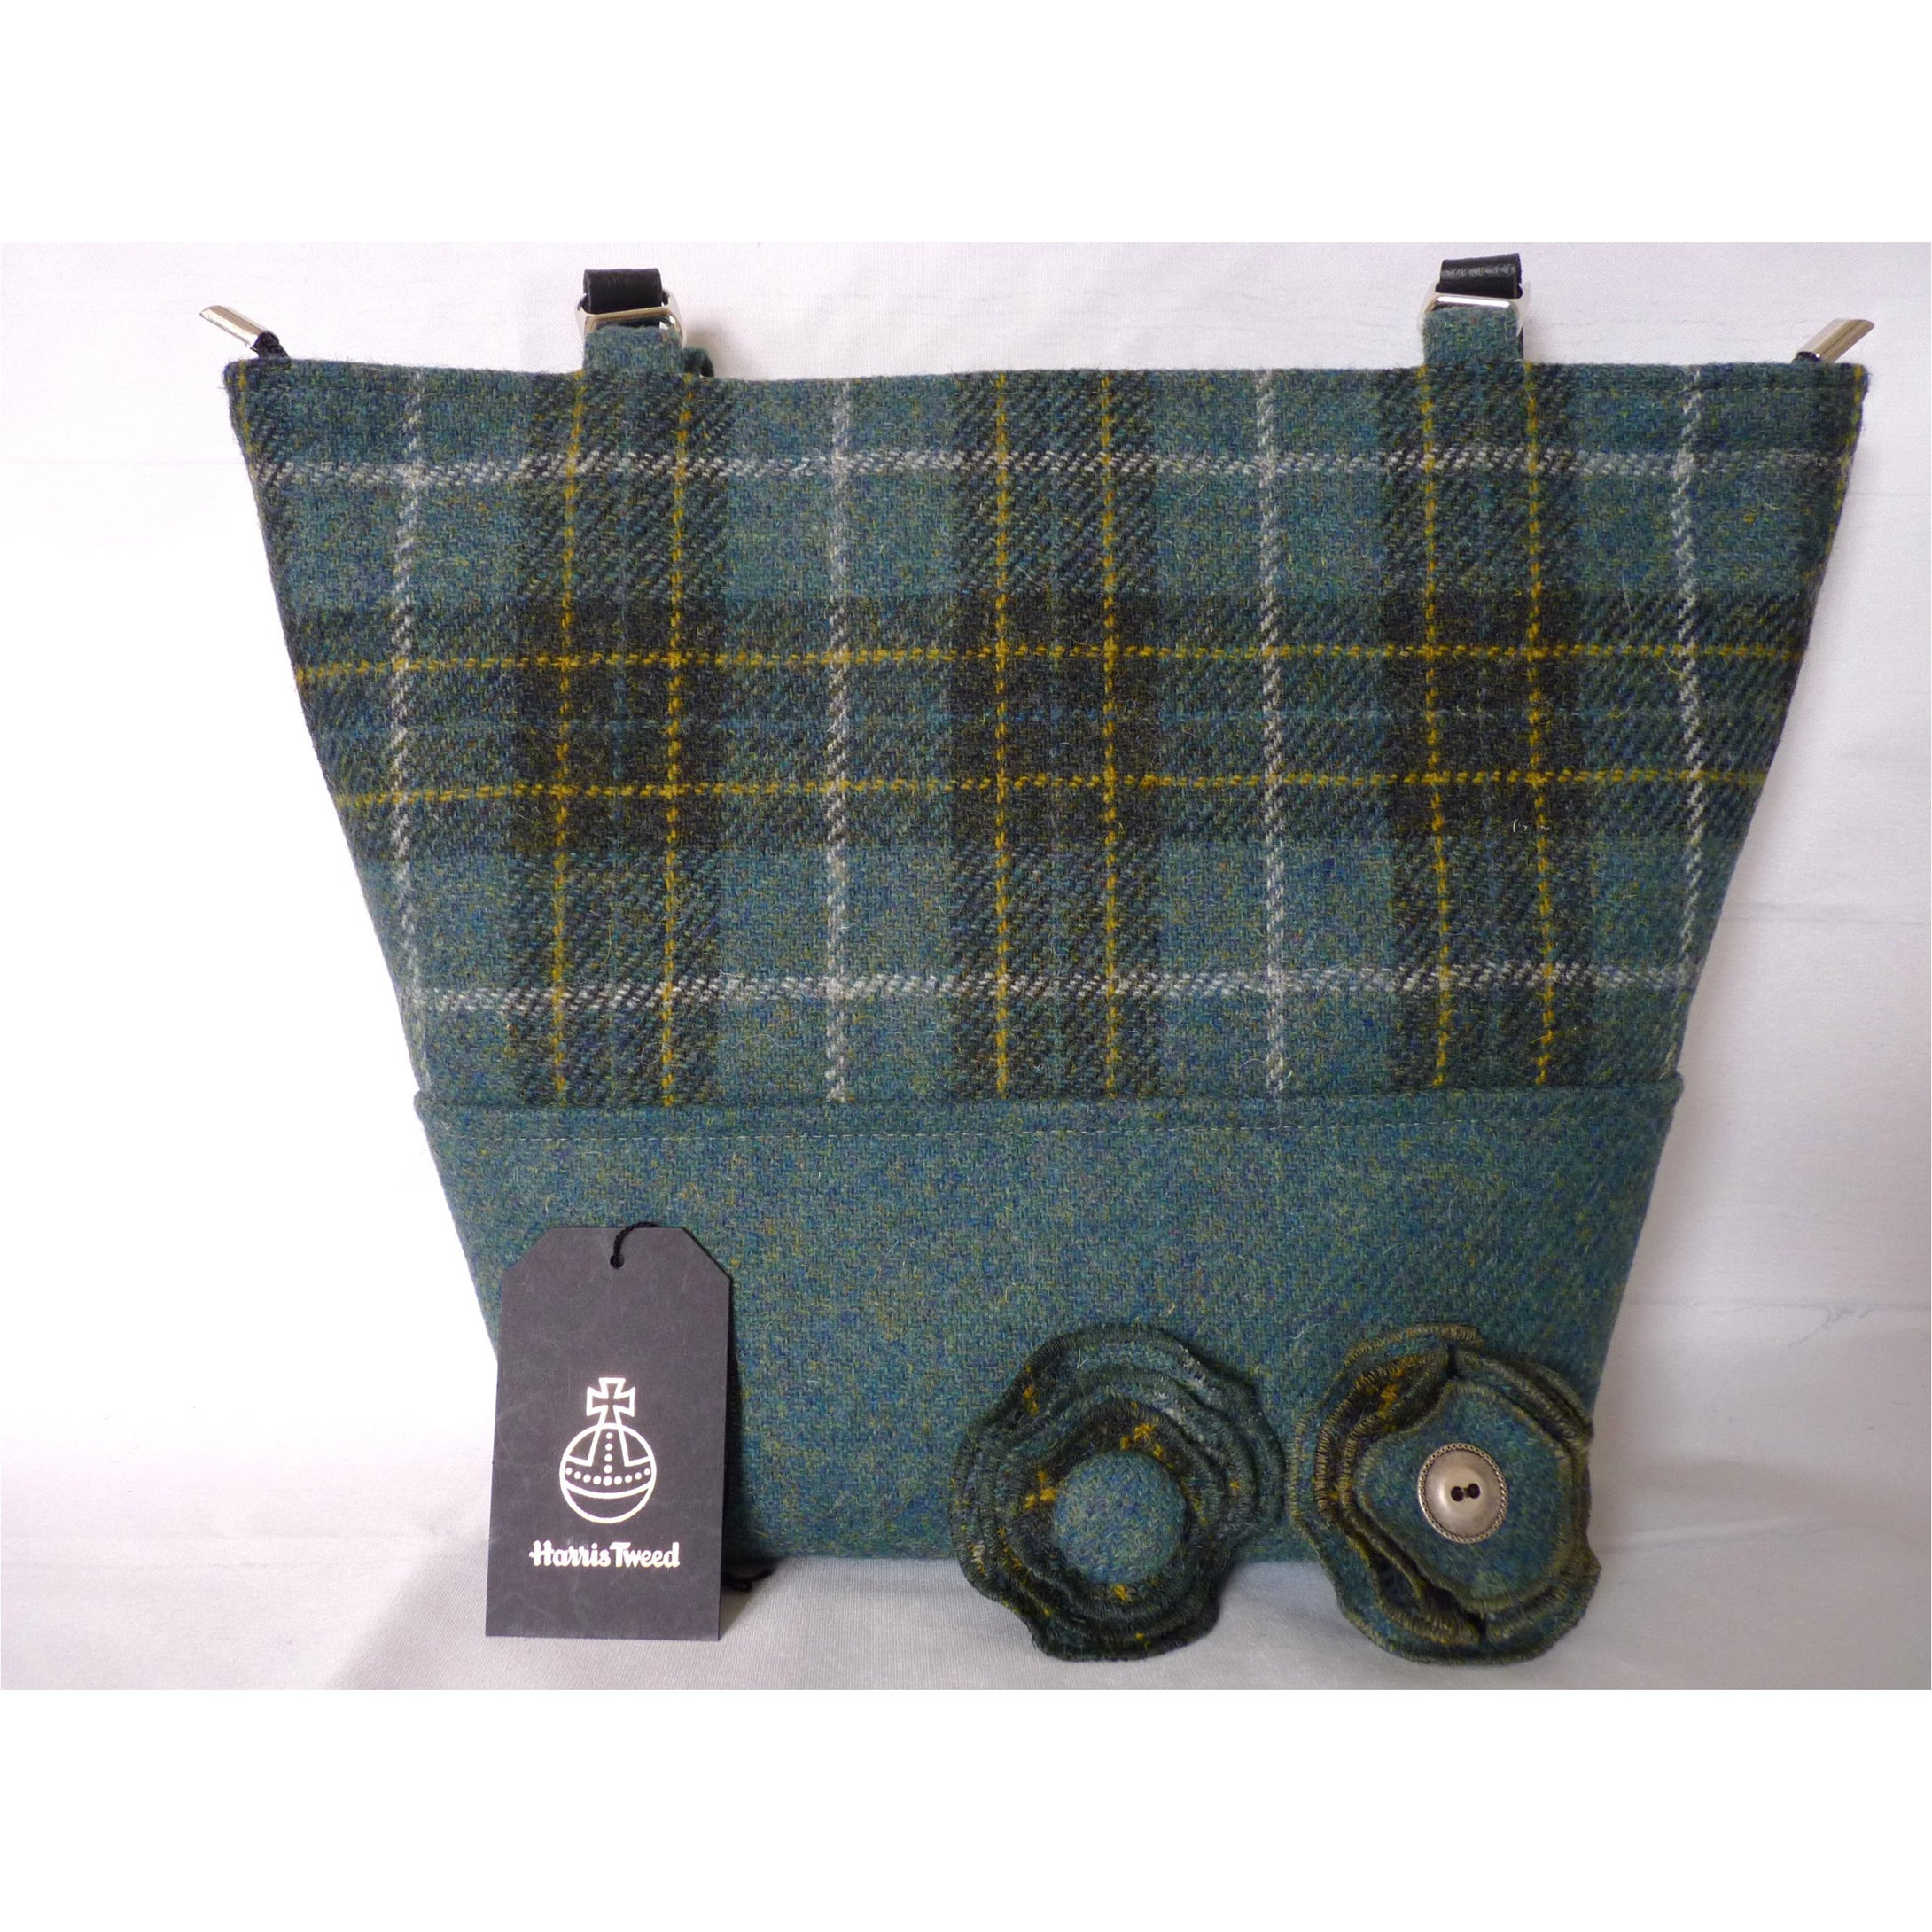 Handmade Harris Tweed Aysgarth two tone tote/ shopping bag made in beautiful green and gold check with a plain sea green base, black lining with a large zipped inner pocket and 3/4″ black leather straps